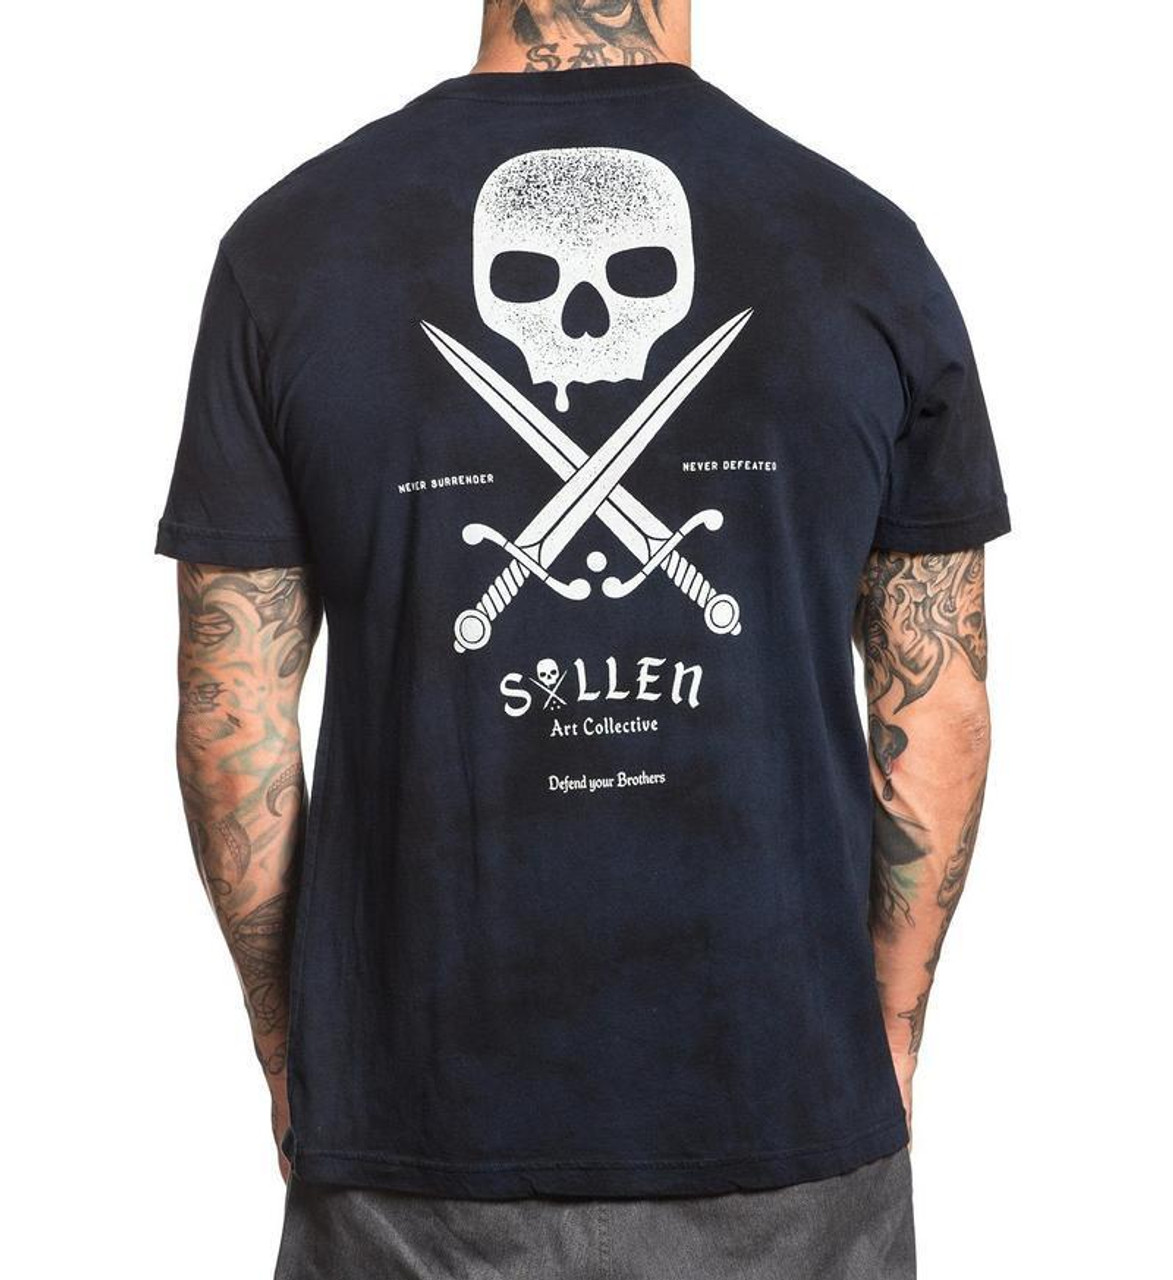 f054923434 Sullen Clothing Swords Badge Black Navy Lava Wash Adult Mens T Tee Shirt  SCM1362